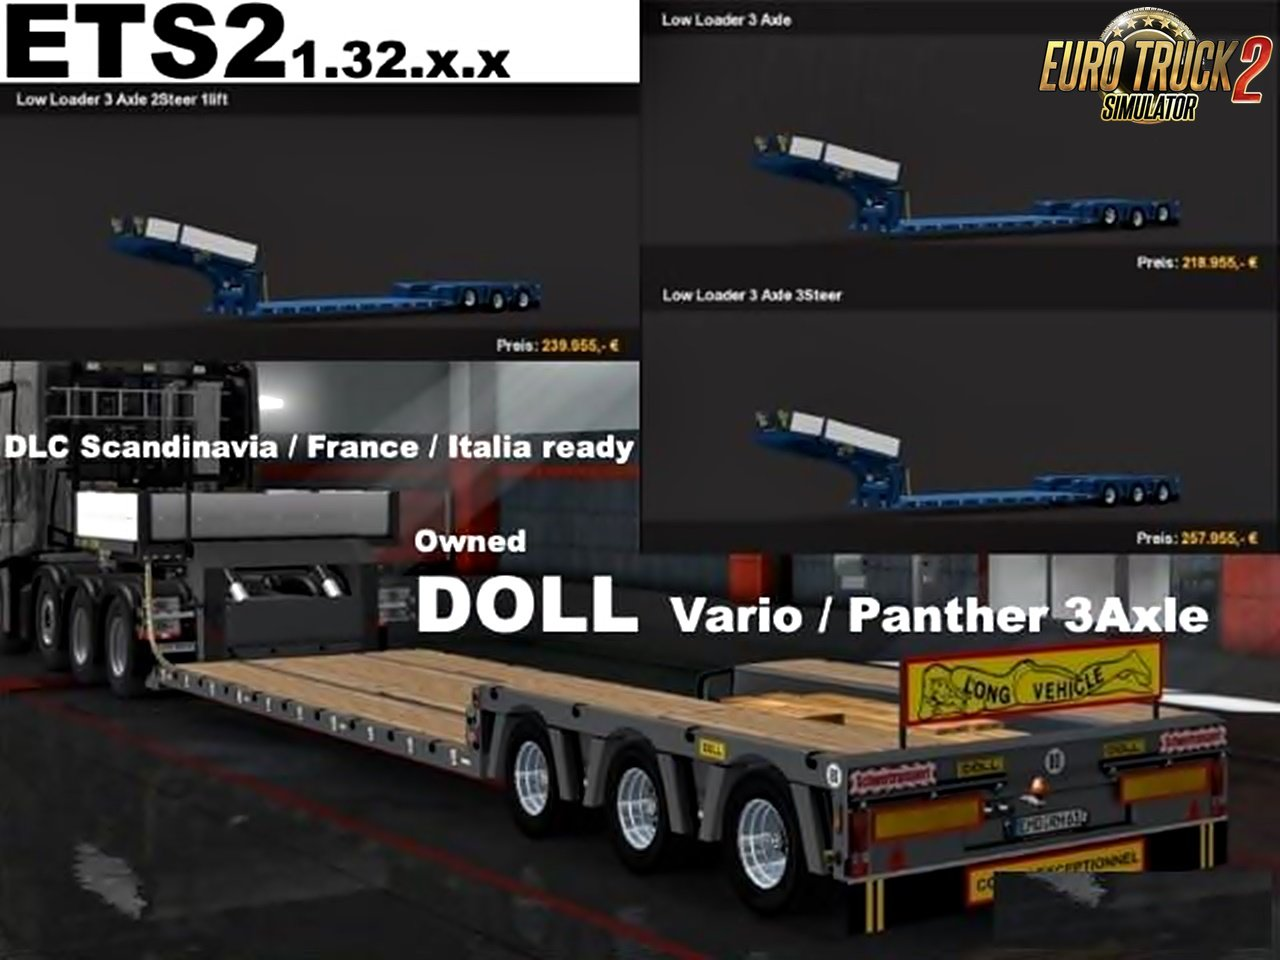 Doll 3Axle low loader owned v7